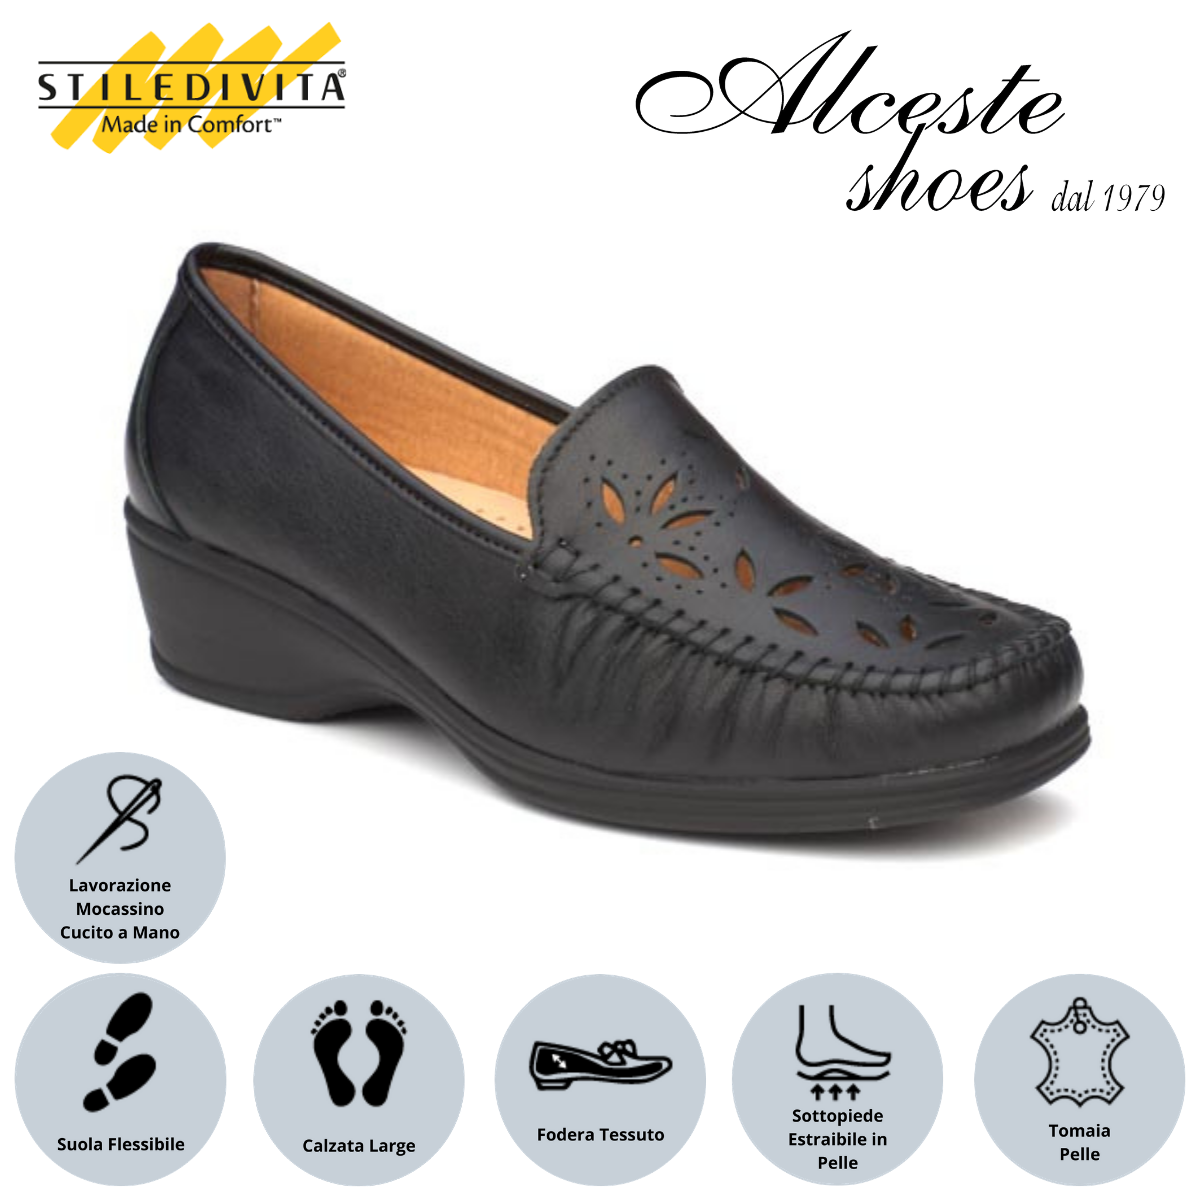 Mocassino Traforato Stiledivita Art. 2430 Pelle Nero Alceste Shoes 13 1